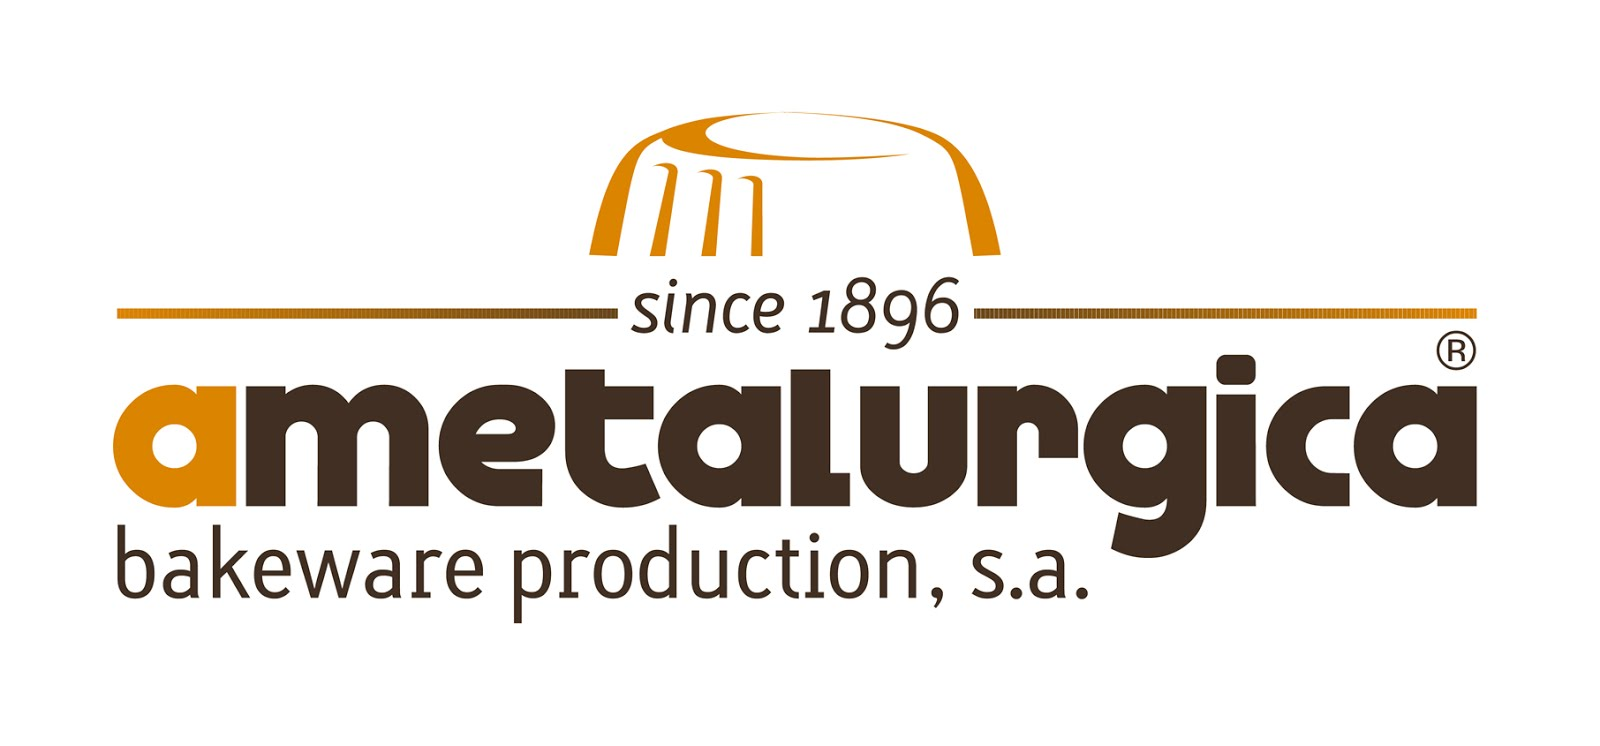 A Metalúrgica Bakeware production, SA